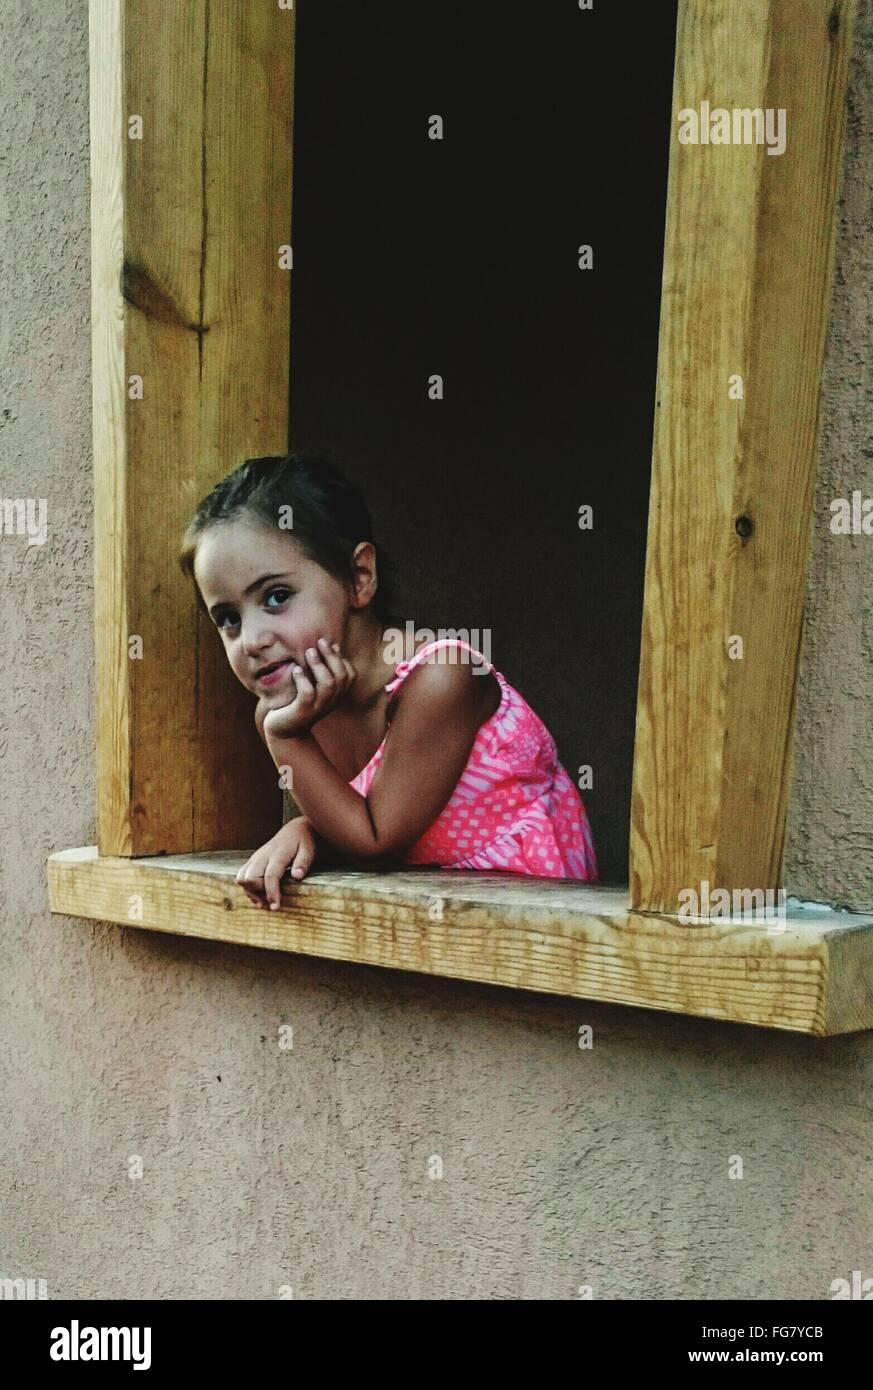 Portrait Of Girl With Hand On Chin Looking Through Window - Stock Image